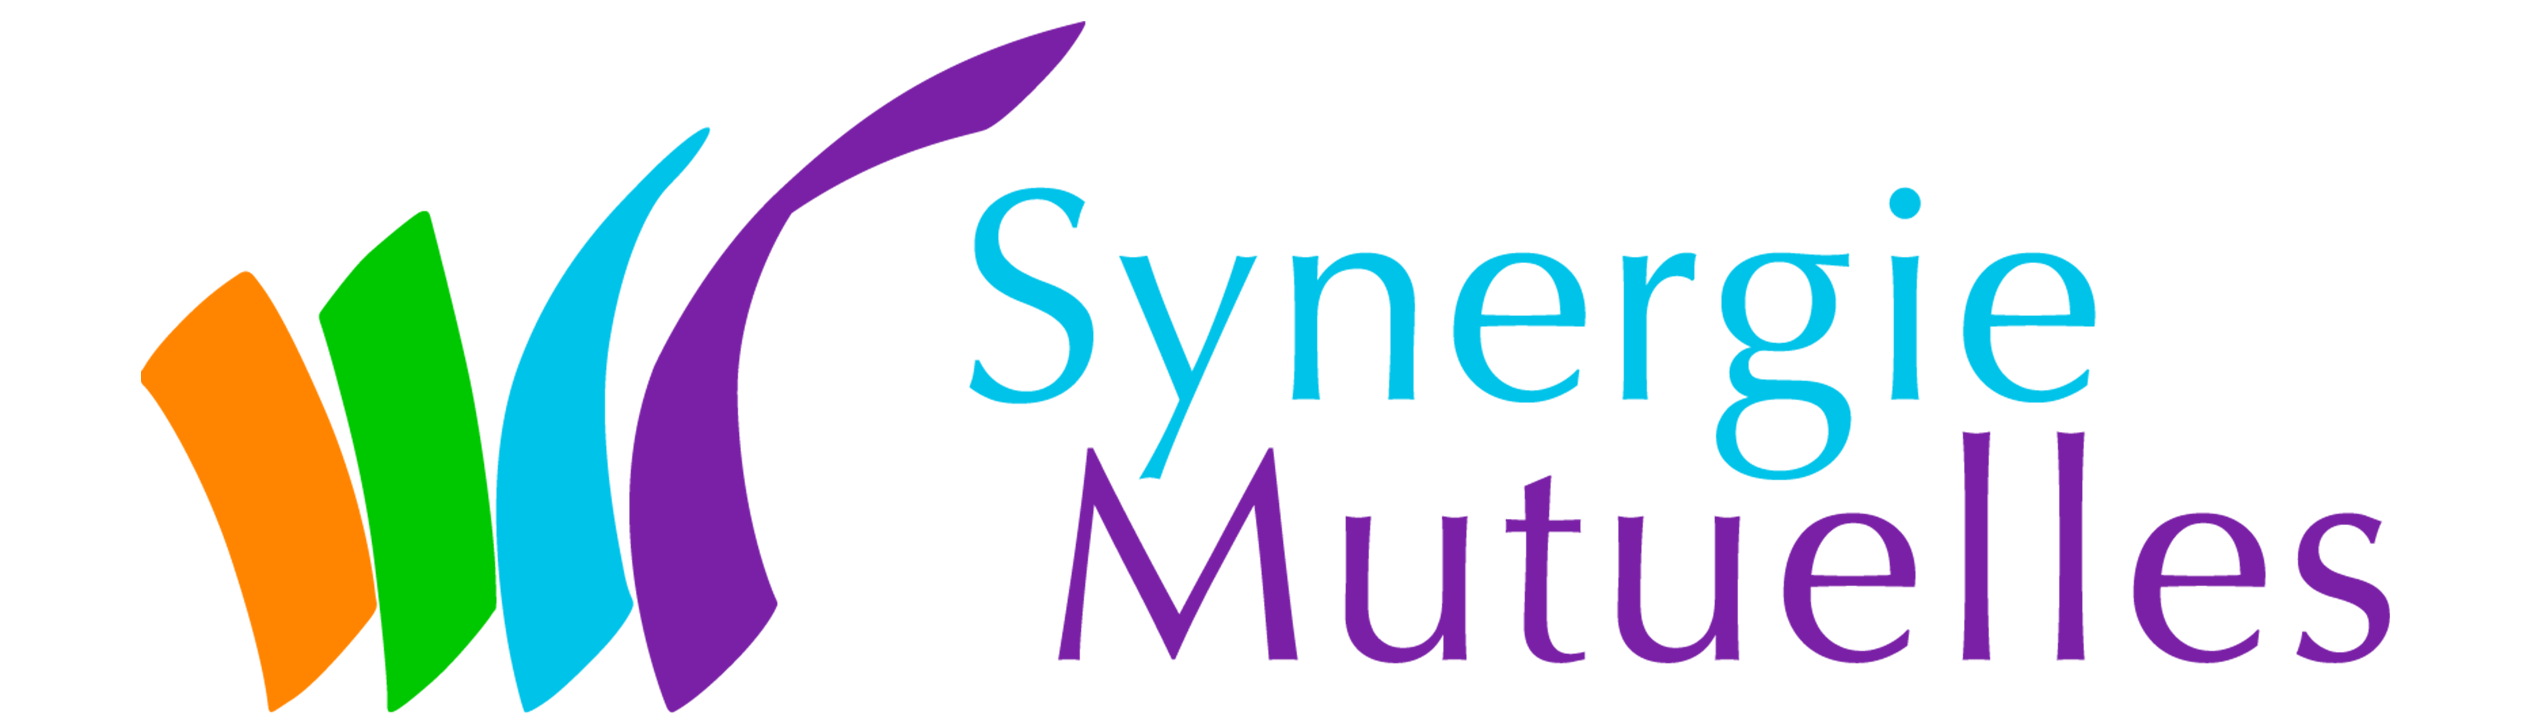 Logo Synergie mutuelles